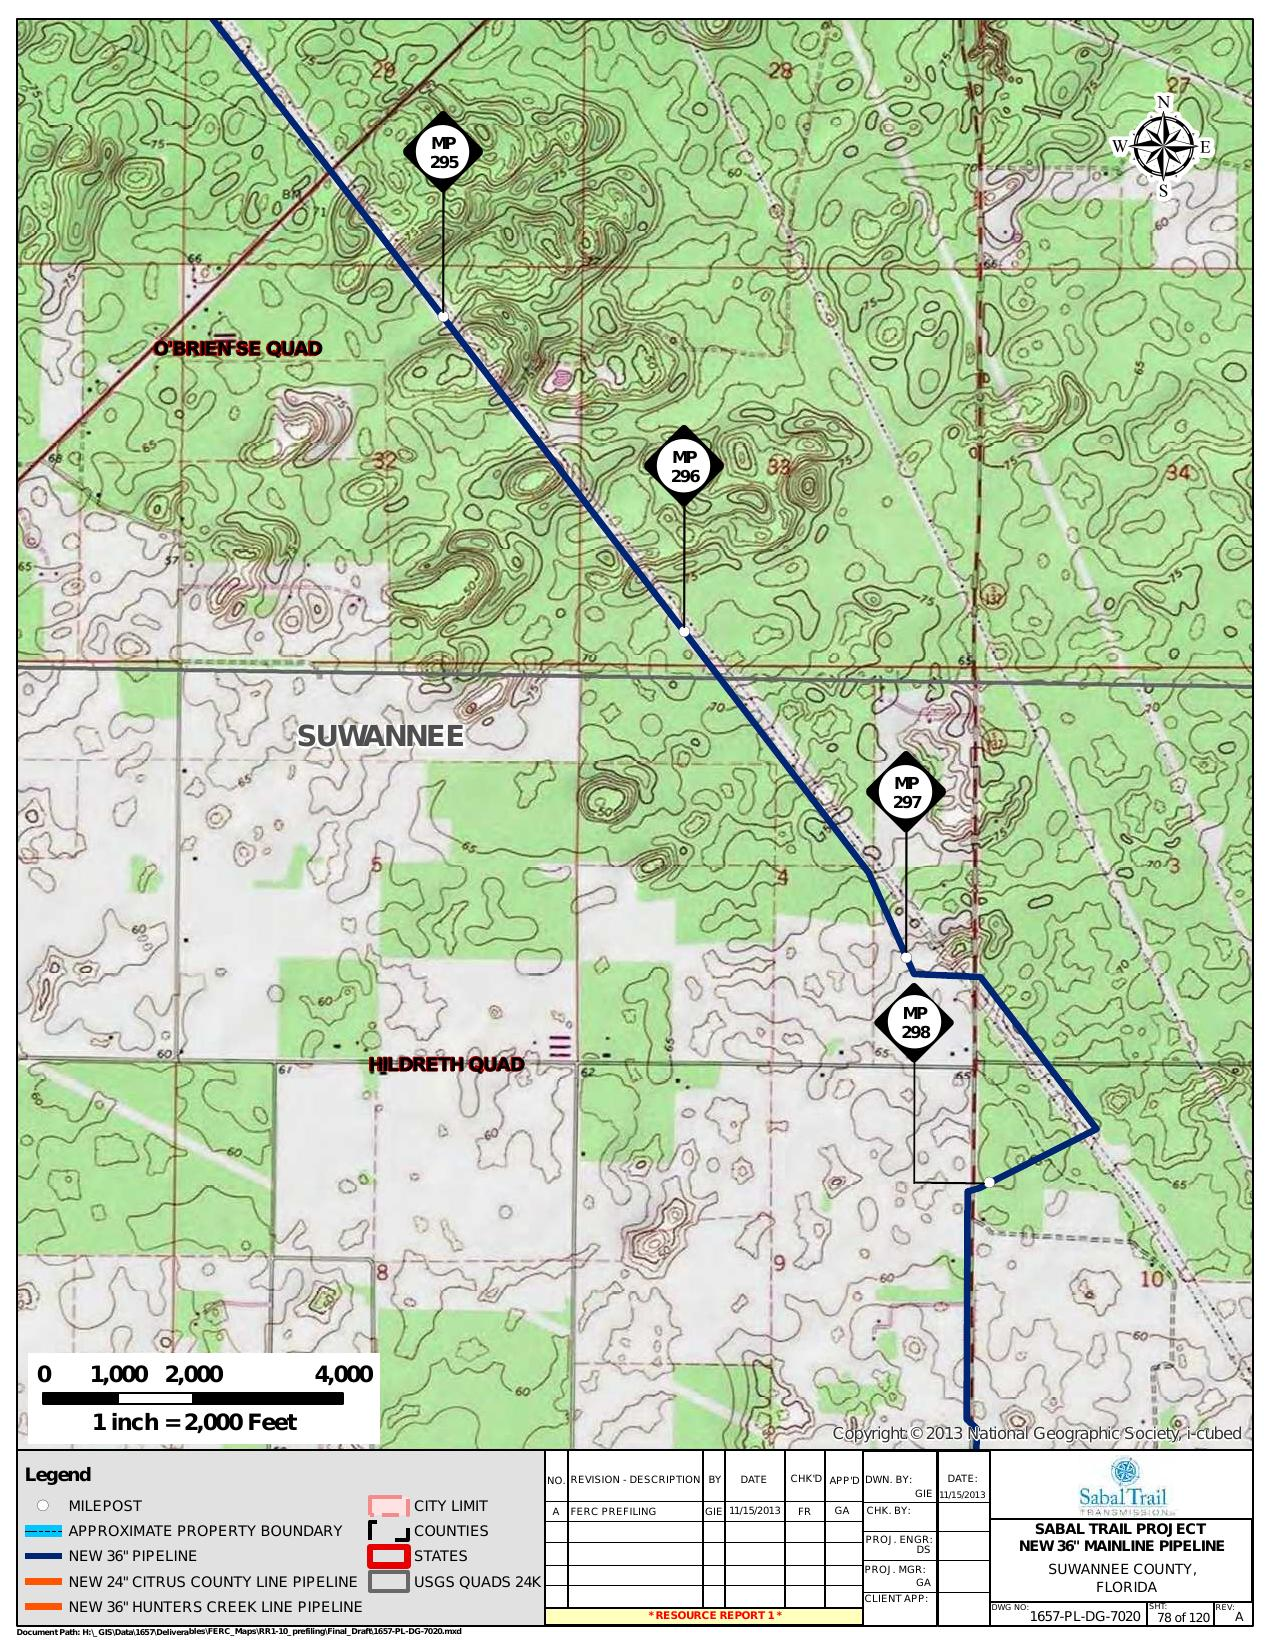 *Hildreth Quad, Suwannee County, Florida, in General Project Description, by SpectraBusters, for FERC Docket No. PF14-1-000, 15 November 2013, converted by SpectraBusters